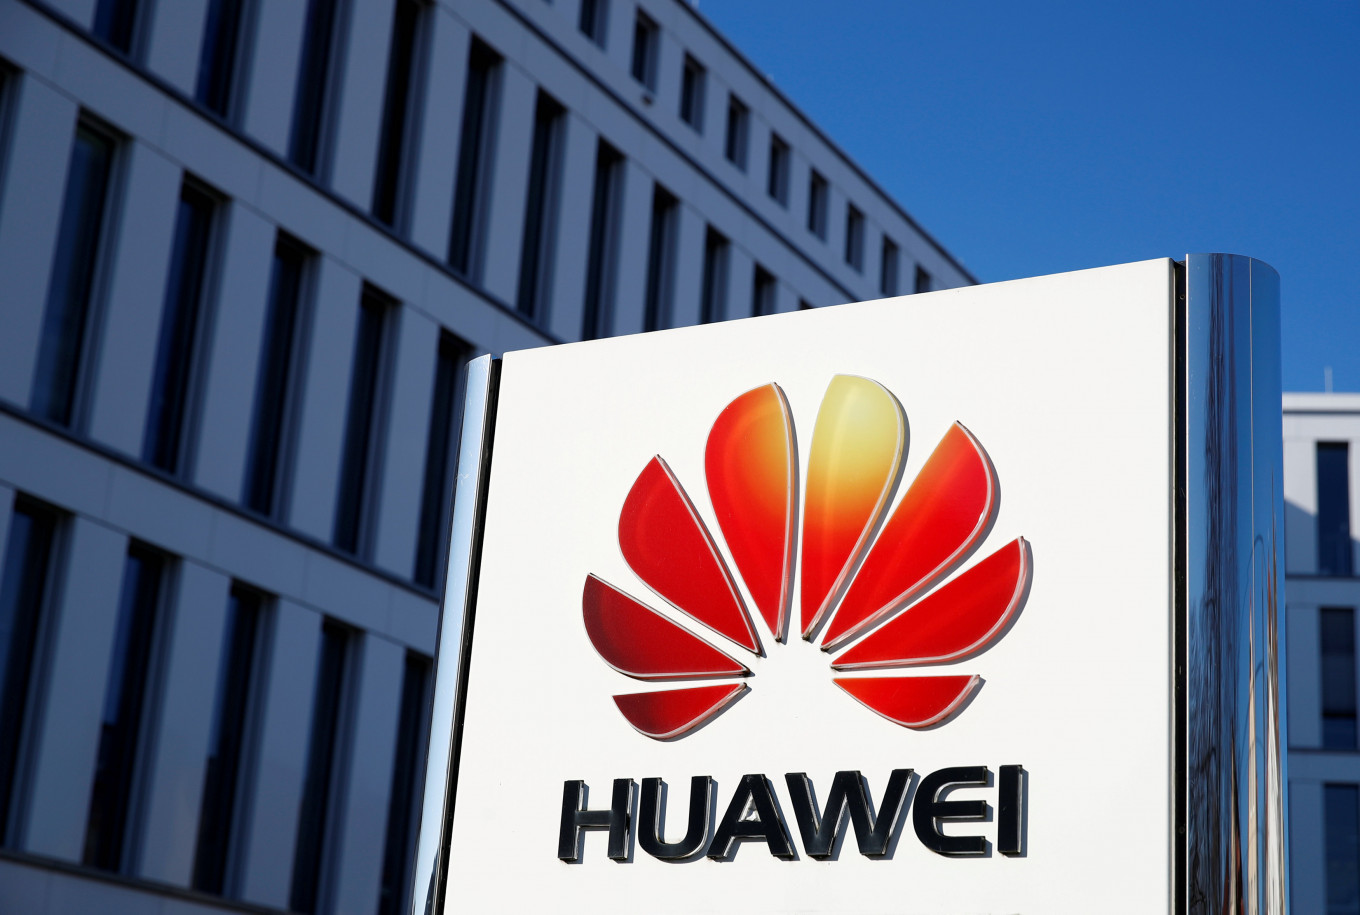 Huawei flagship phone goes Google-free